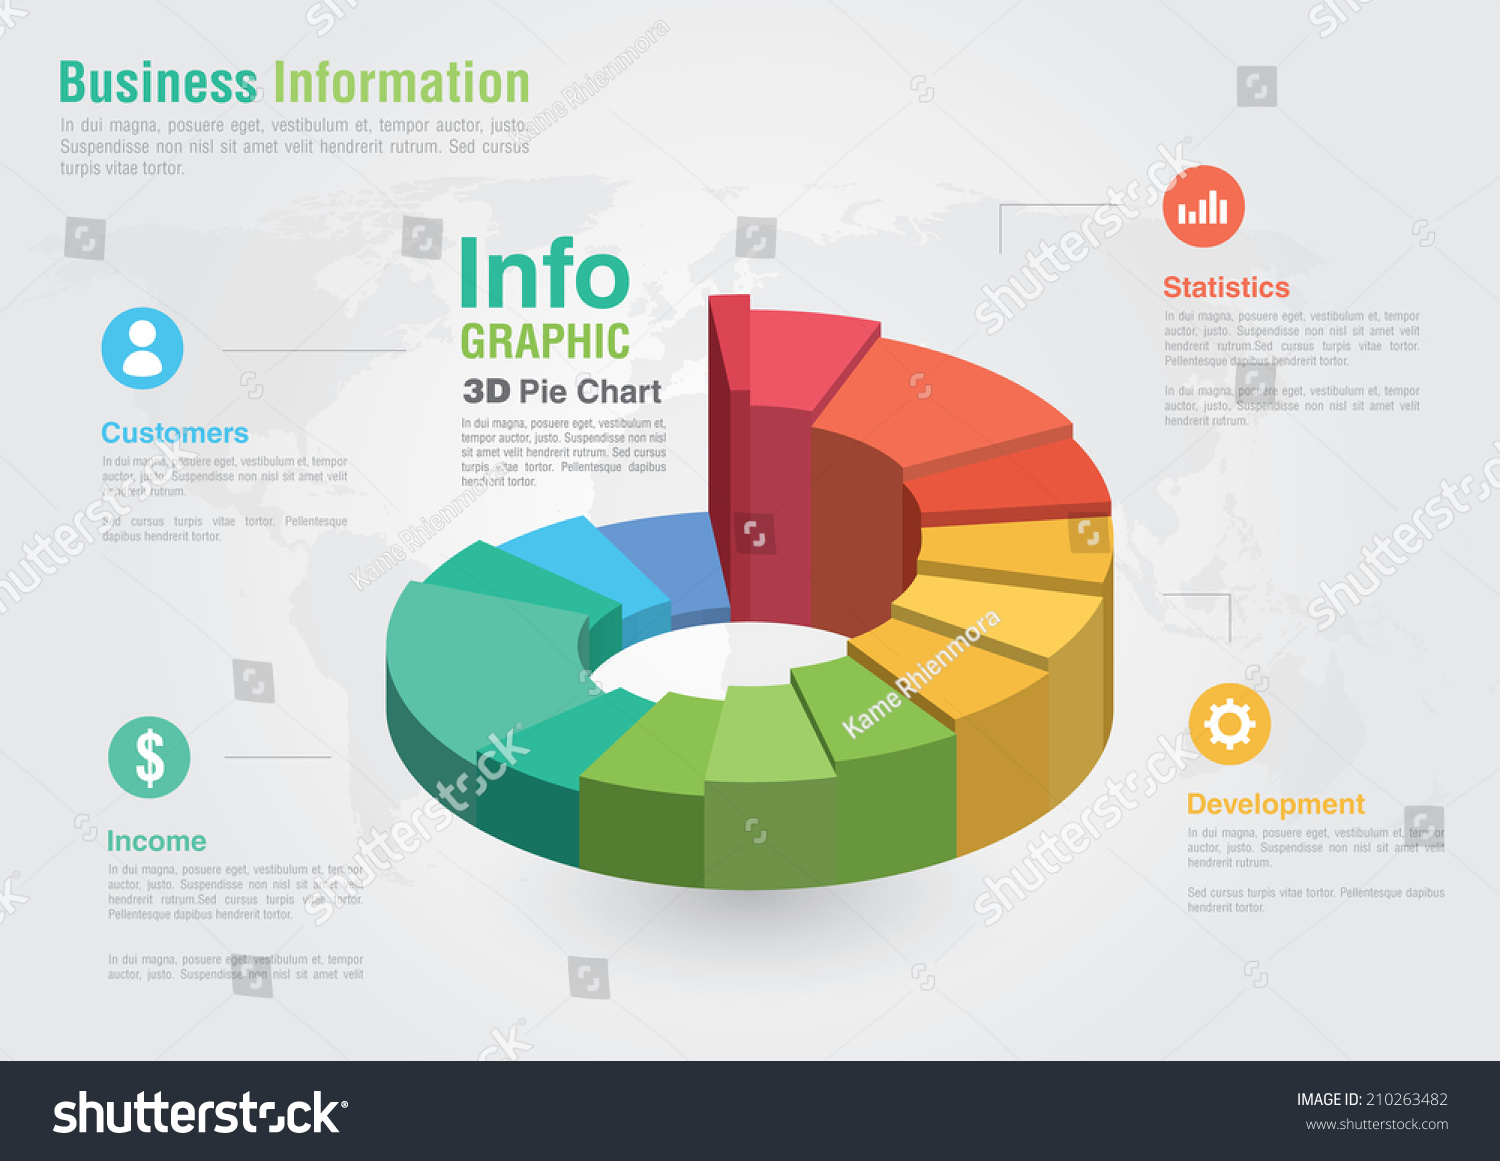 Business 3d pie chart infographic business stock vector 210263482 business 3d pie chart infographic business report creative marketing business success geenschuldenfo Image collections